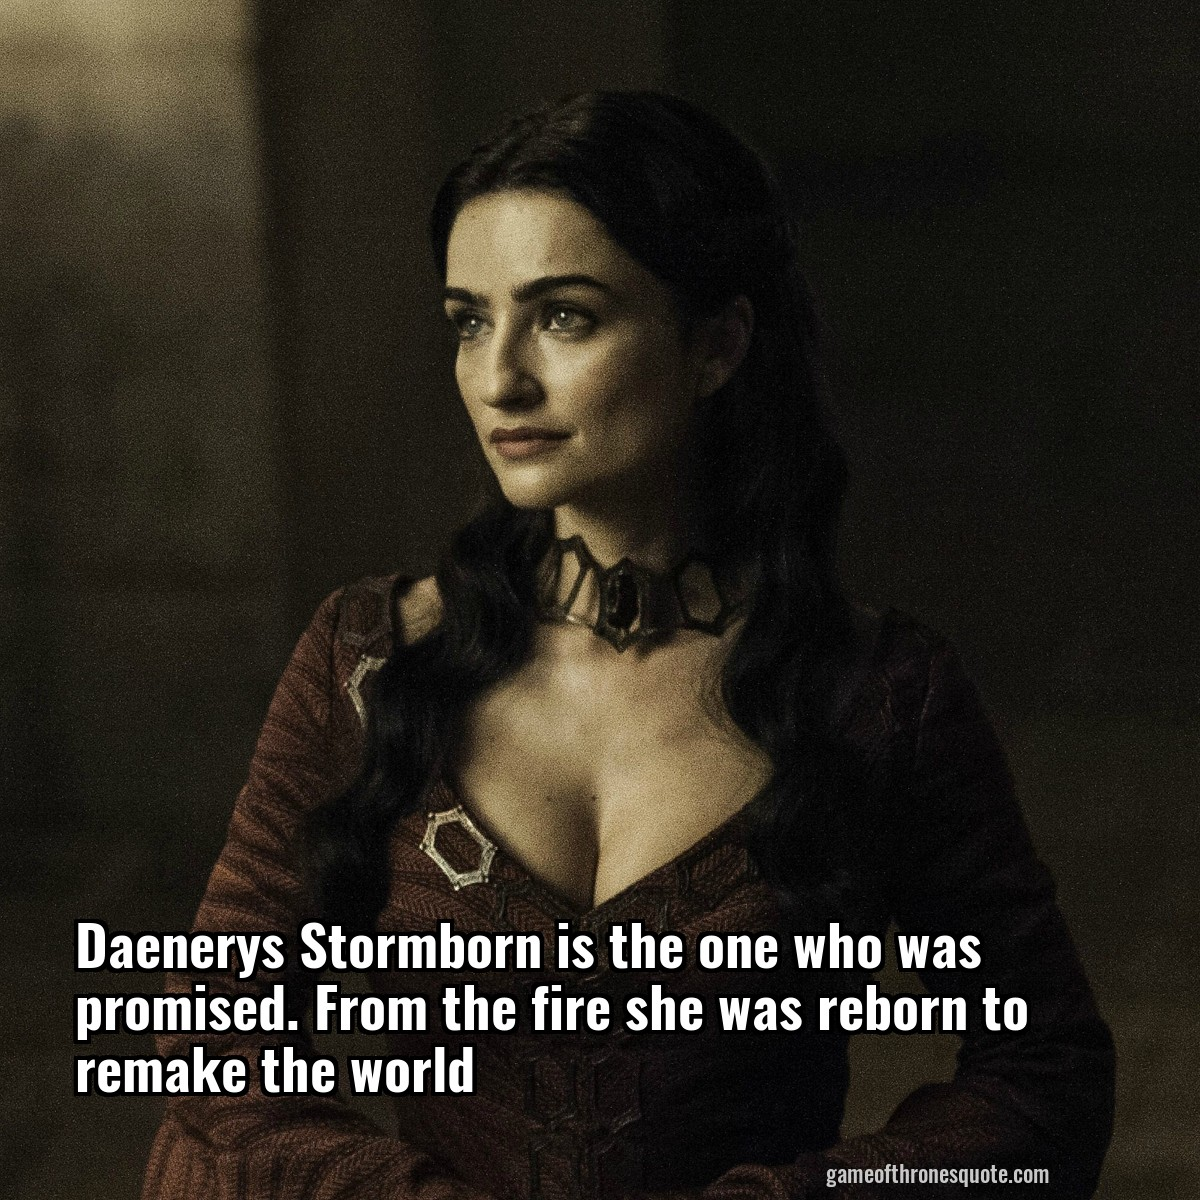 Daenerys Stormborn is the one who was promised. From the fire she was reborn to remake the world